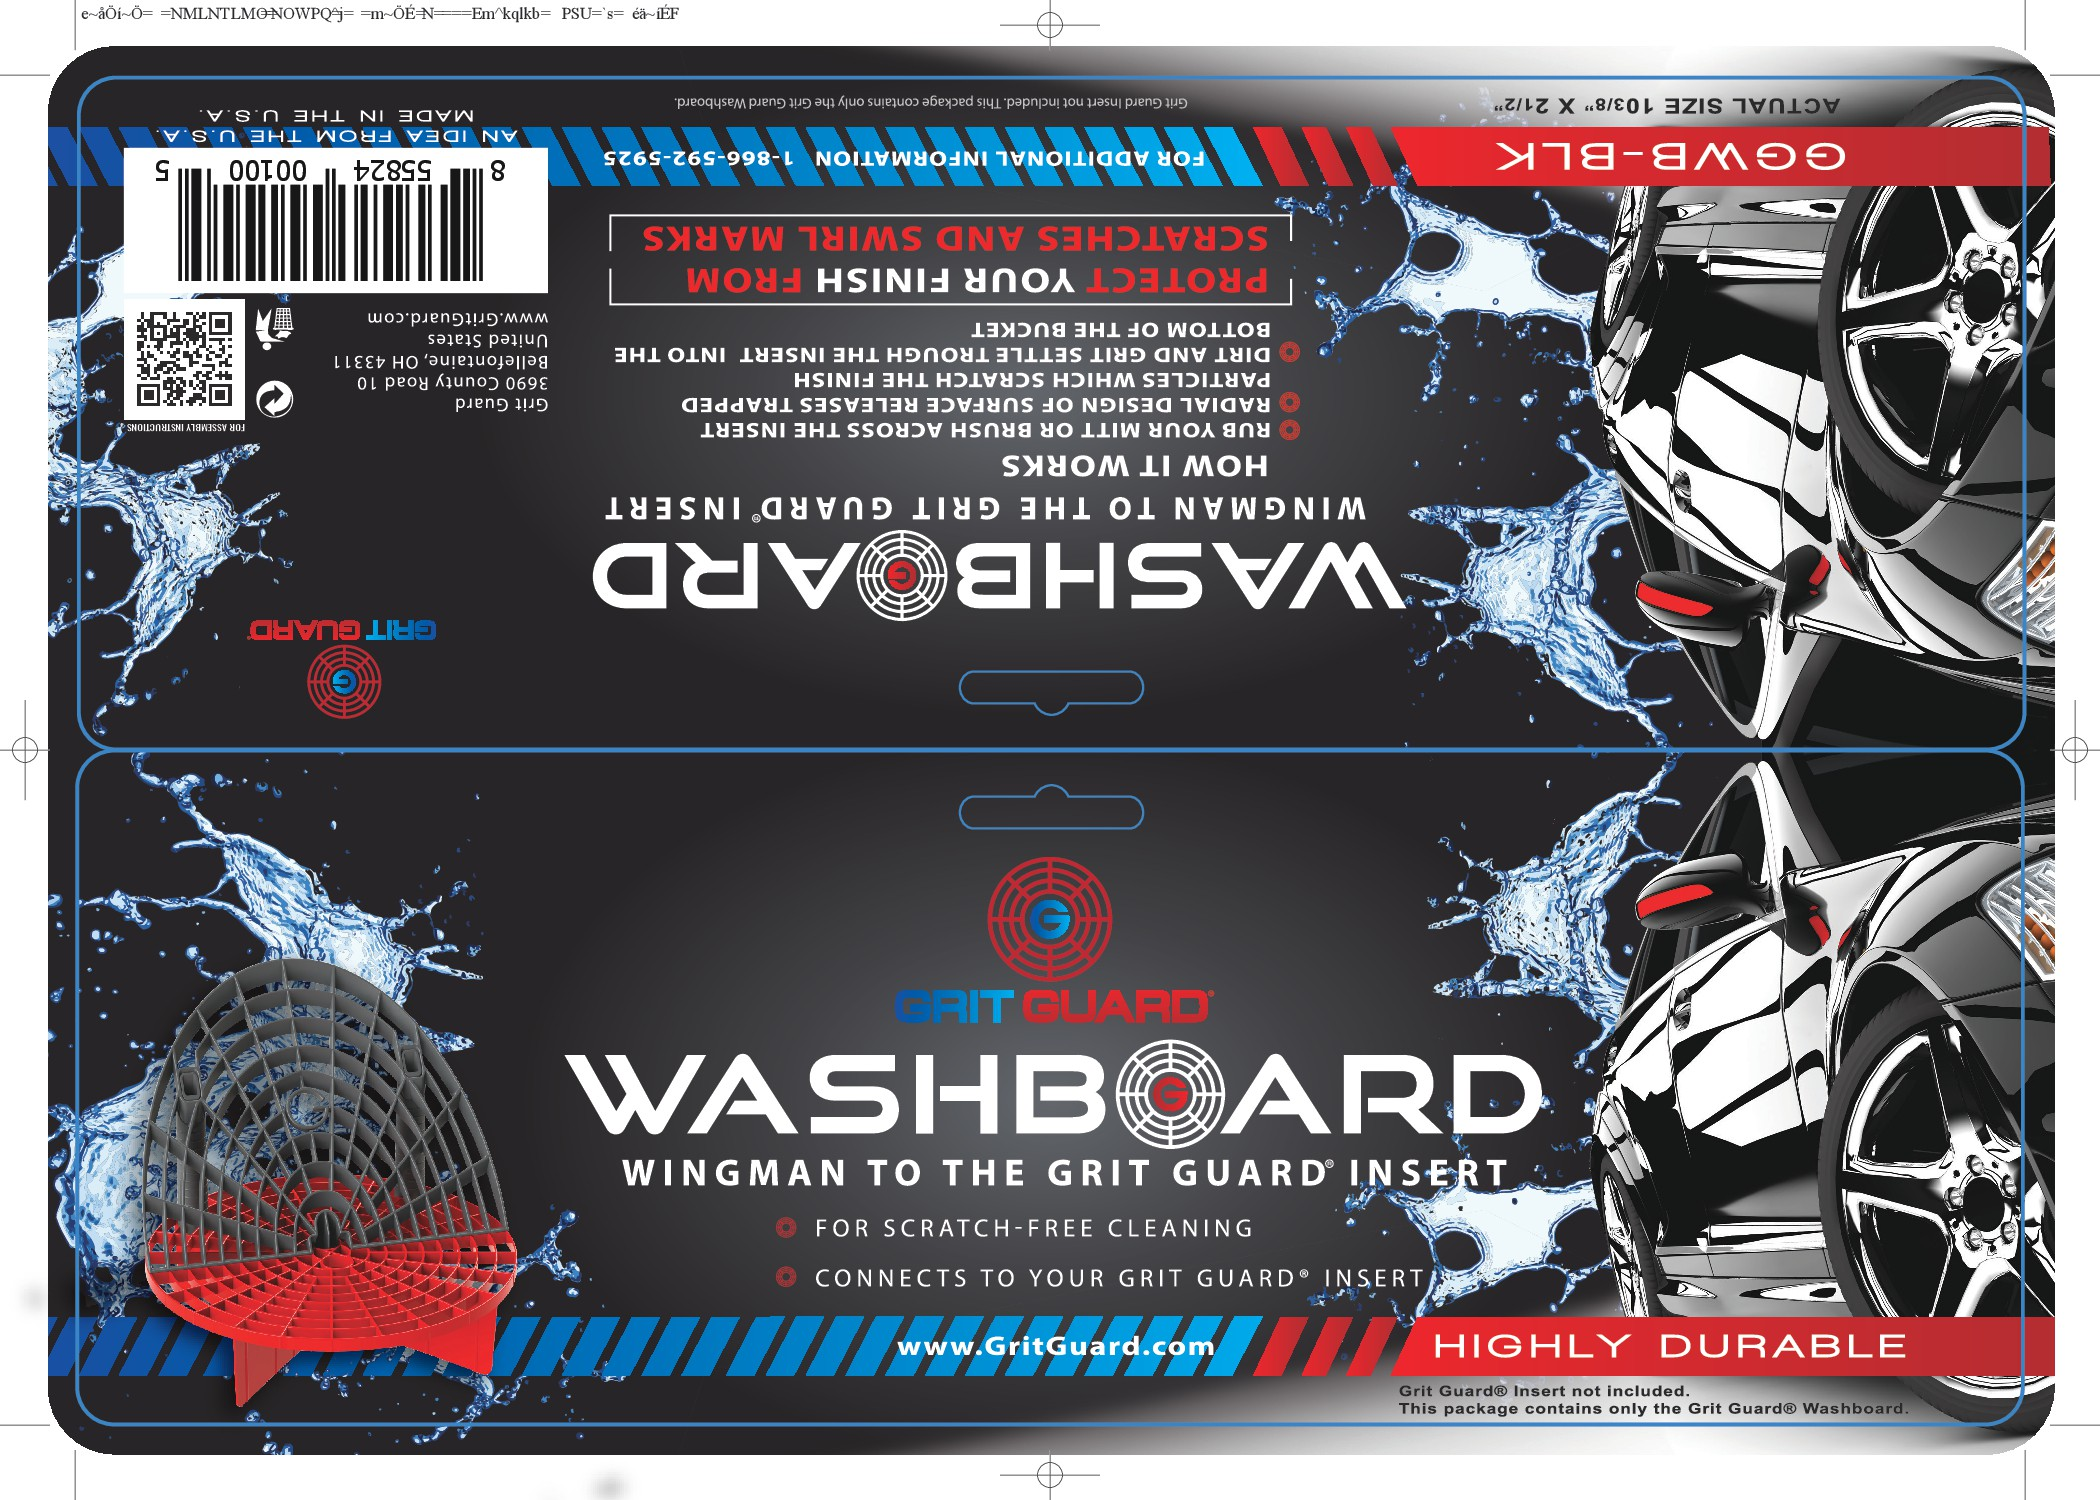 Design header card for the new Grit Guard Washboard - the new angle on car washing.